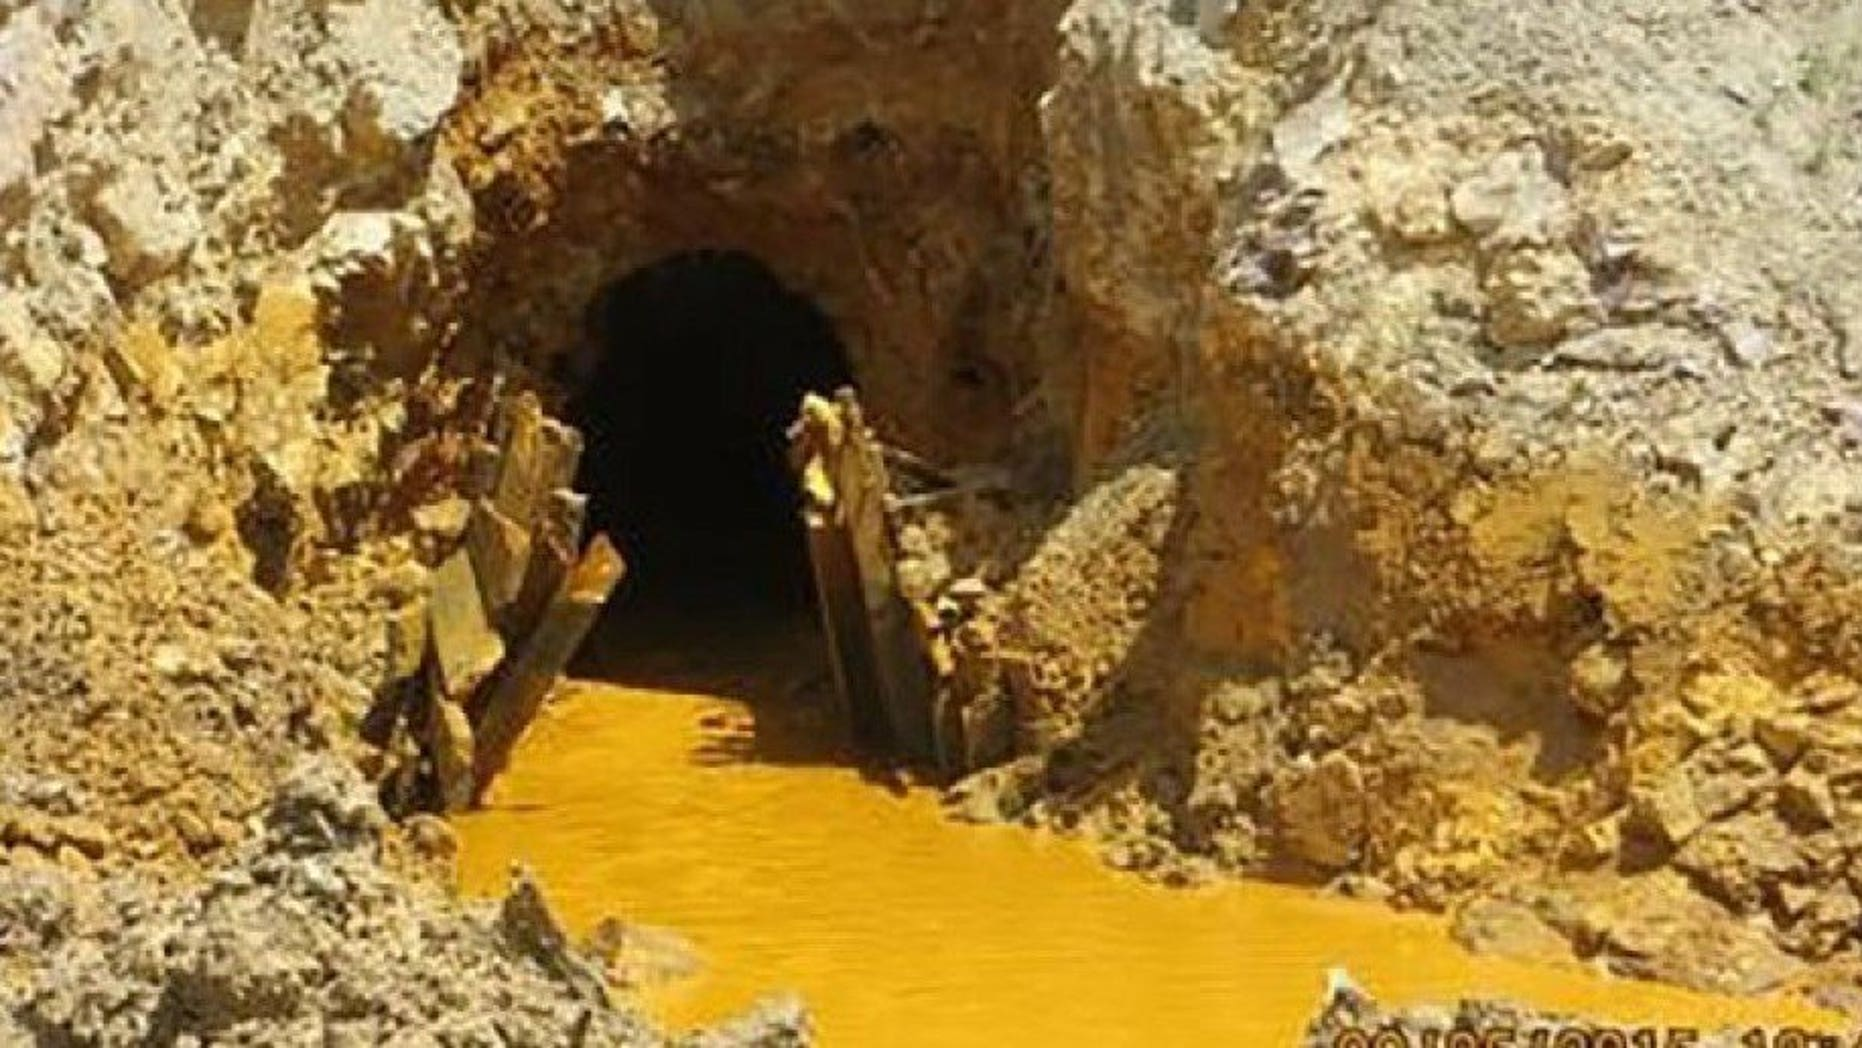 Yellow mine waste water is seen at the entrance to the Gold King Mine in San Juan County, Colorado, in this picture released by the Environmental Protection Agency (EPA) taken August 5, 2015.  REUTERS/EPA/Handout